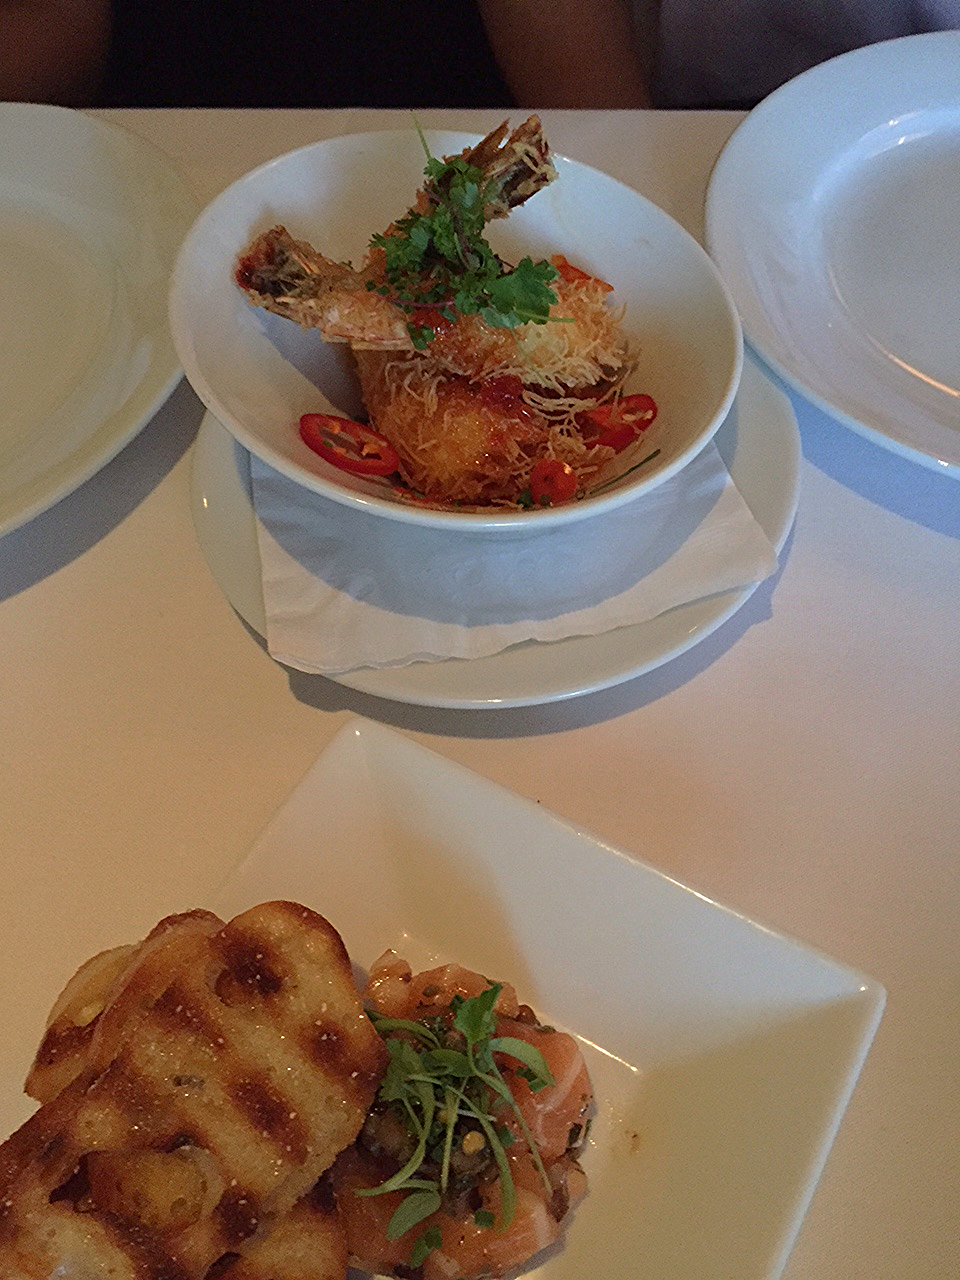 Salmon Tartare & Shrimp Kataifi. Really great quality shrimp, well cooked, not soggy or over cooked at all.